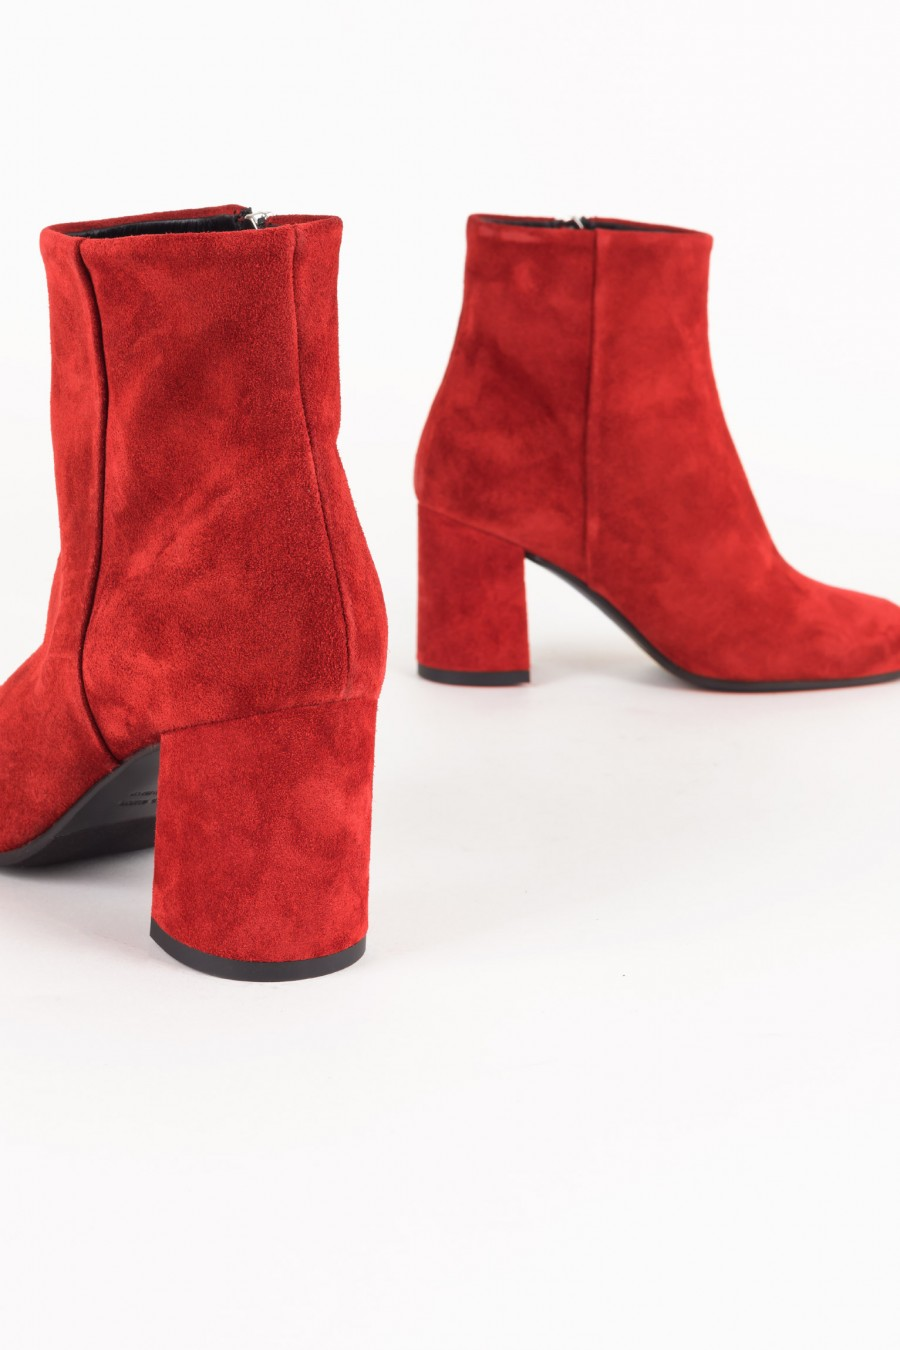 Red suede boots with zipper